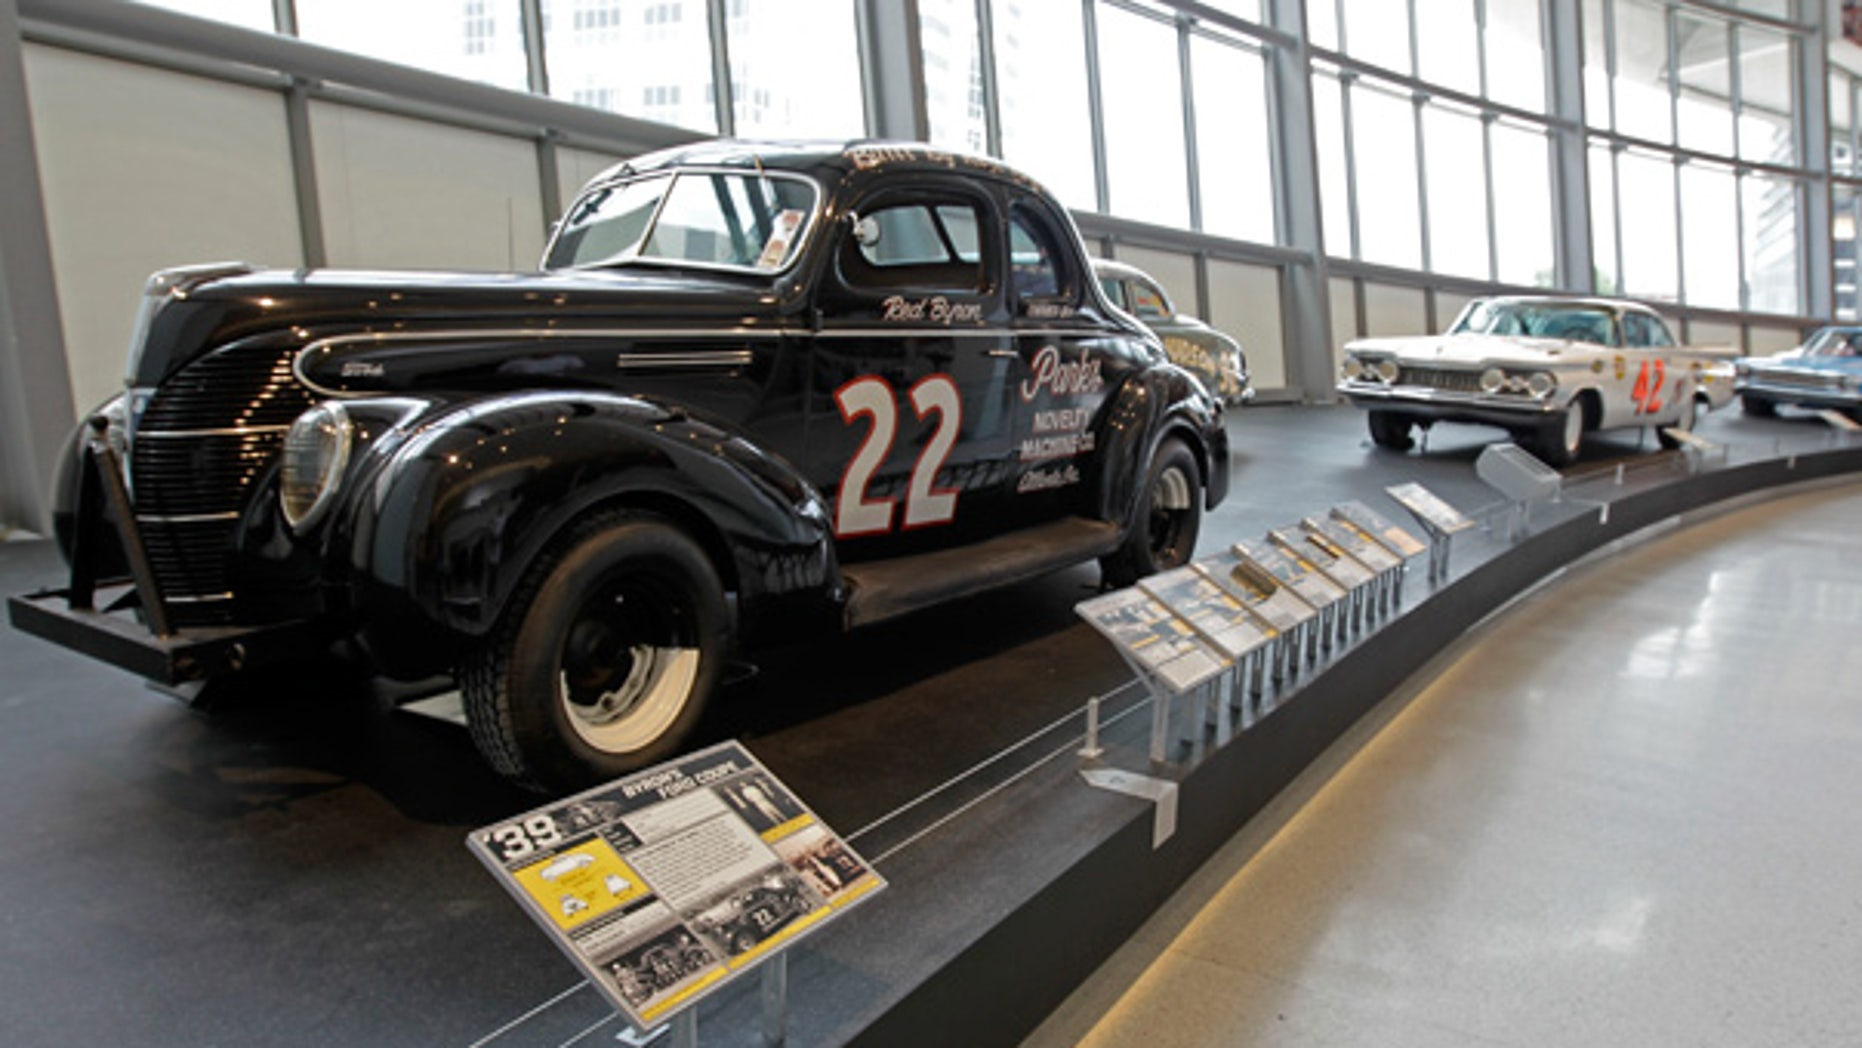 May 4: Red Byron's 1939 Ford, winner of NASCAR's first race, is seen on Glory Road near the entrance to the NASCAR Hall of Fame in Charlotte, N.C.